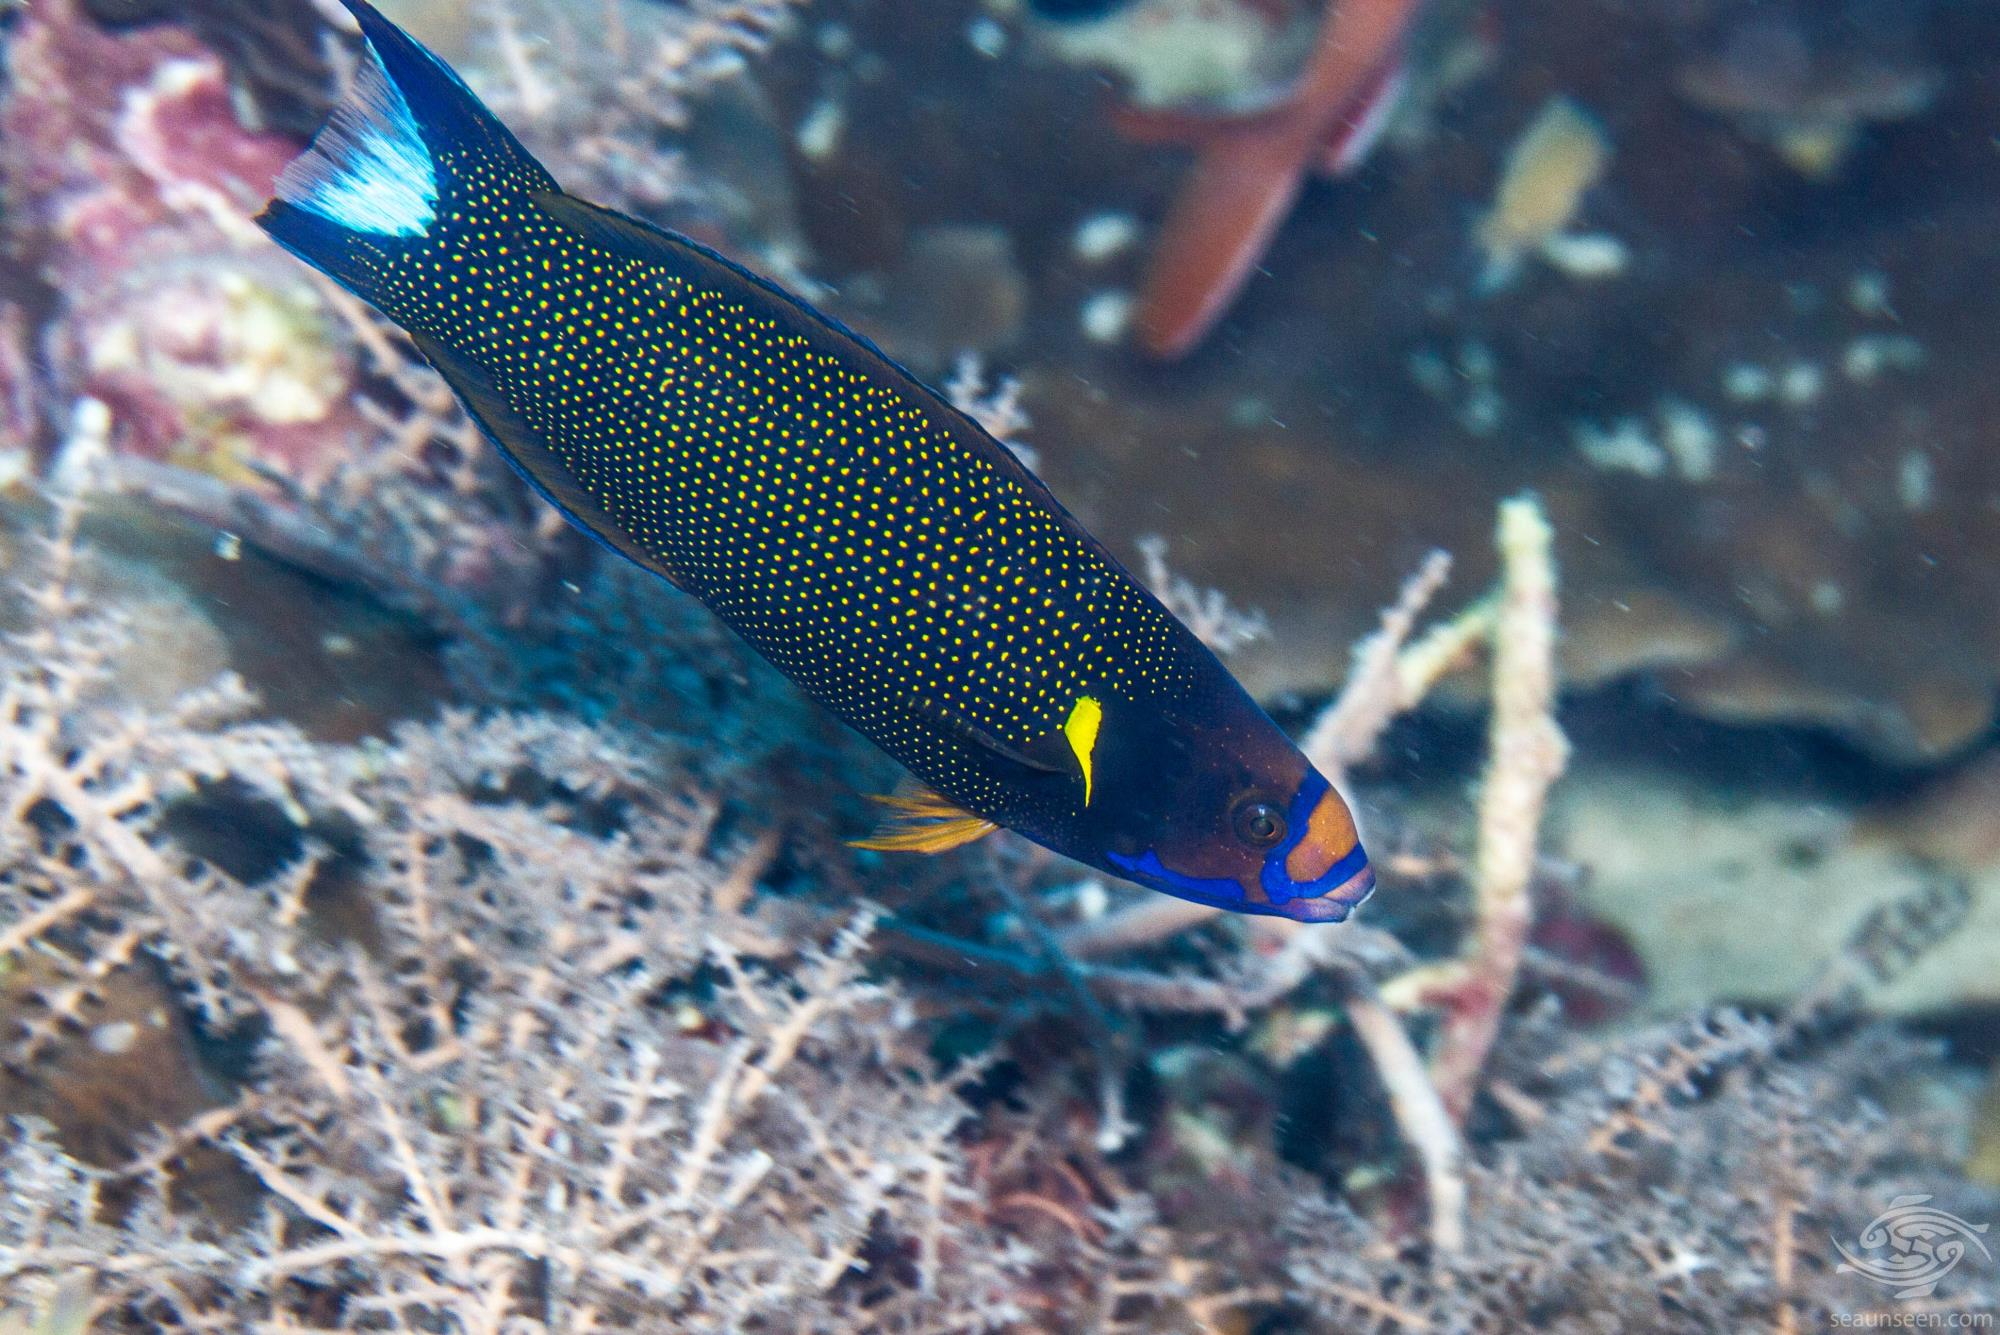 Yellowback Tubelip wrasse (Labropsis xanthonota) also known as the Wedge-tailed wrasse, Blacklobe wrasse and V-tail wrasse